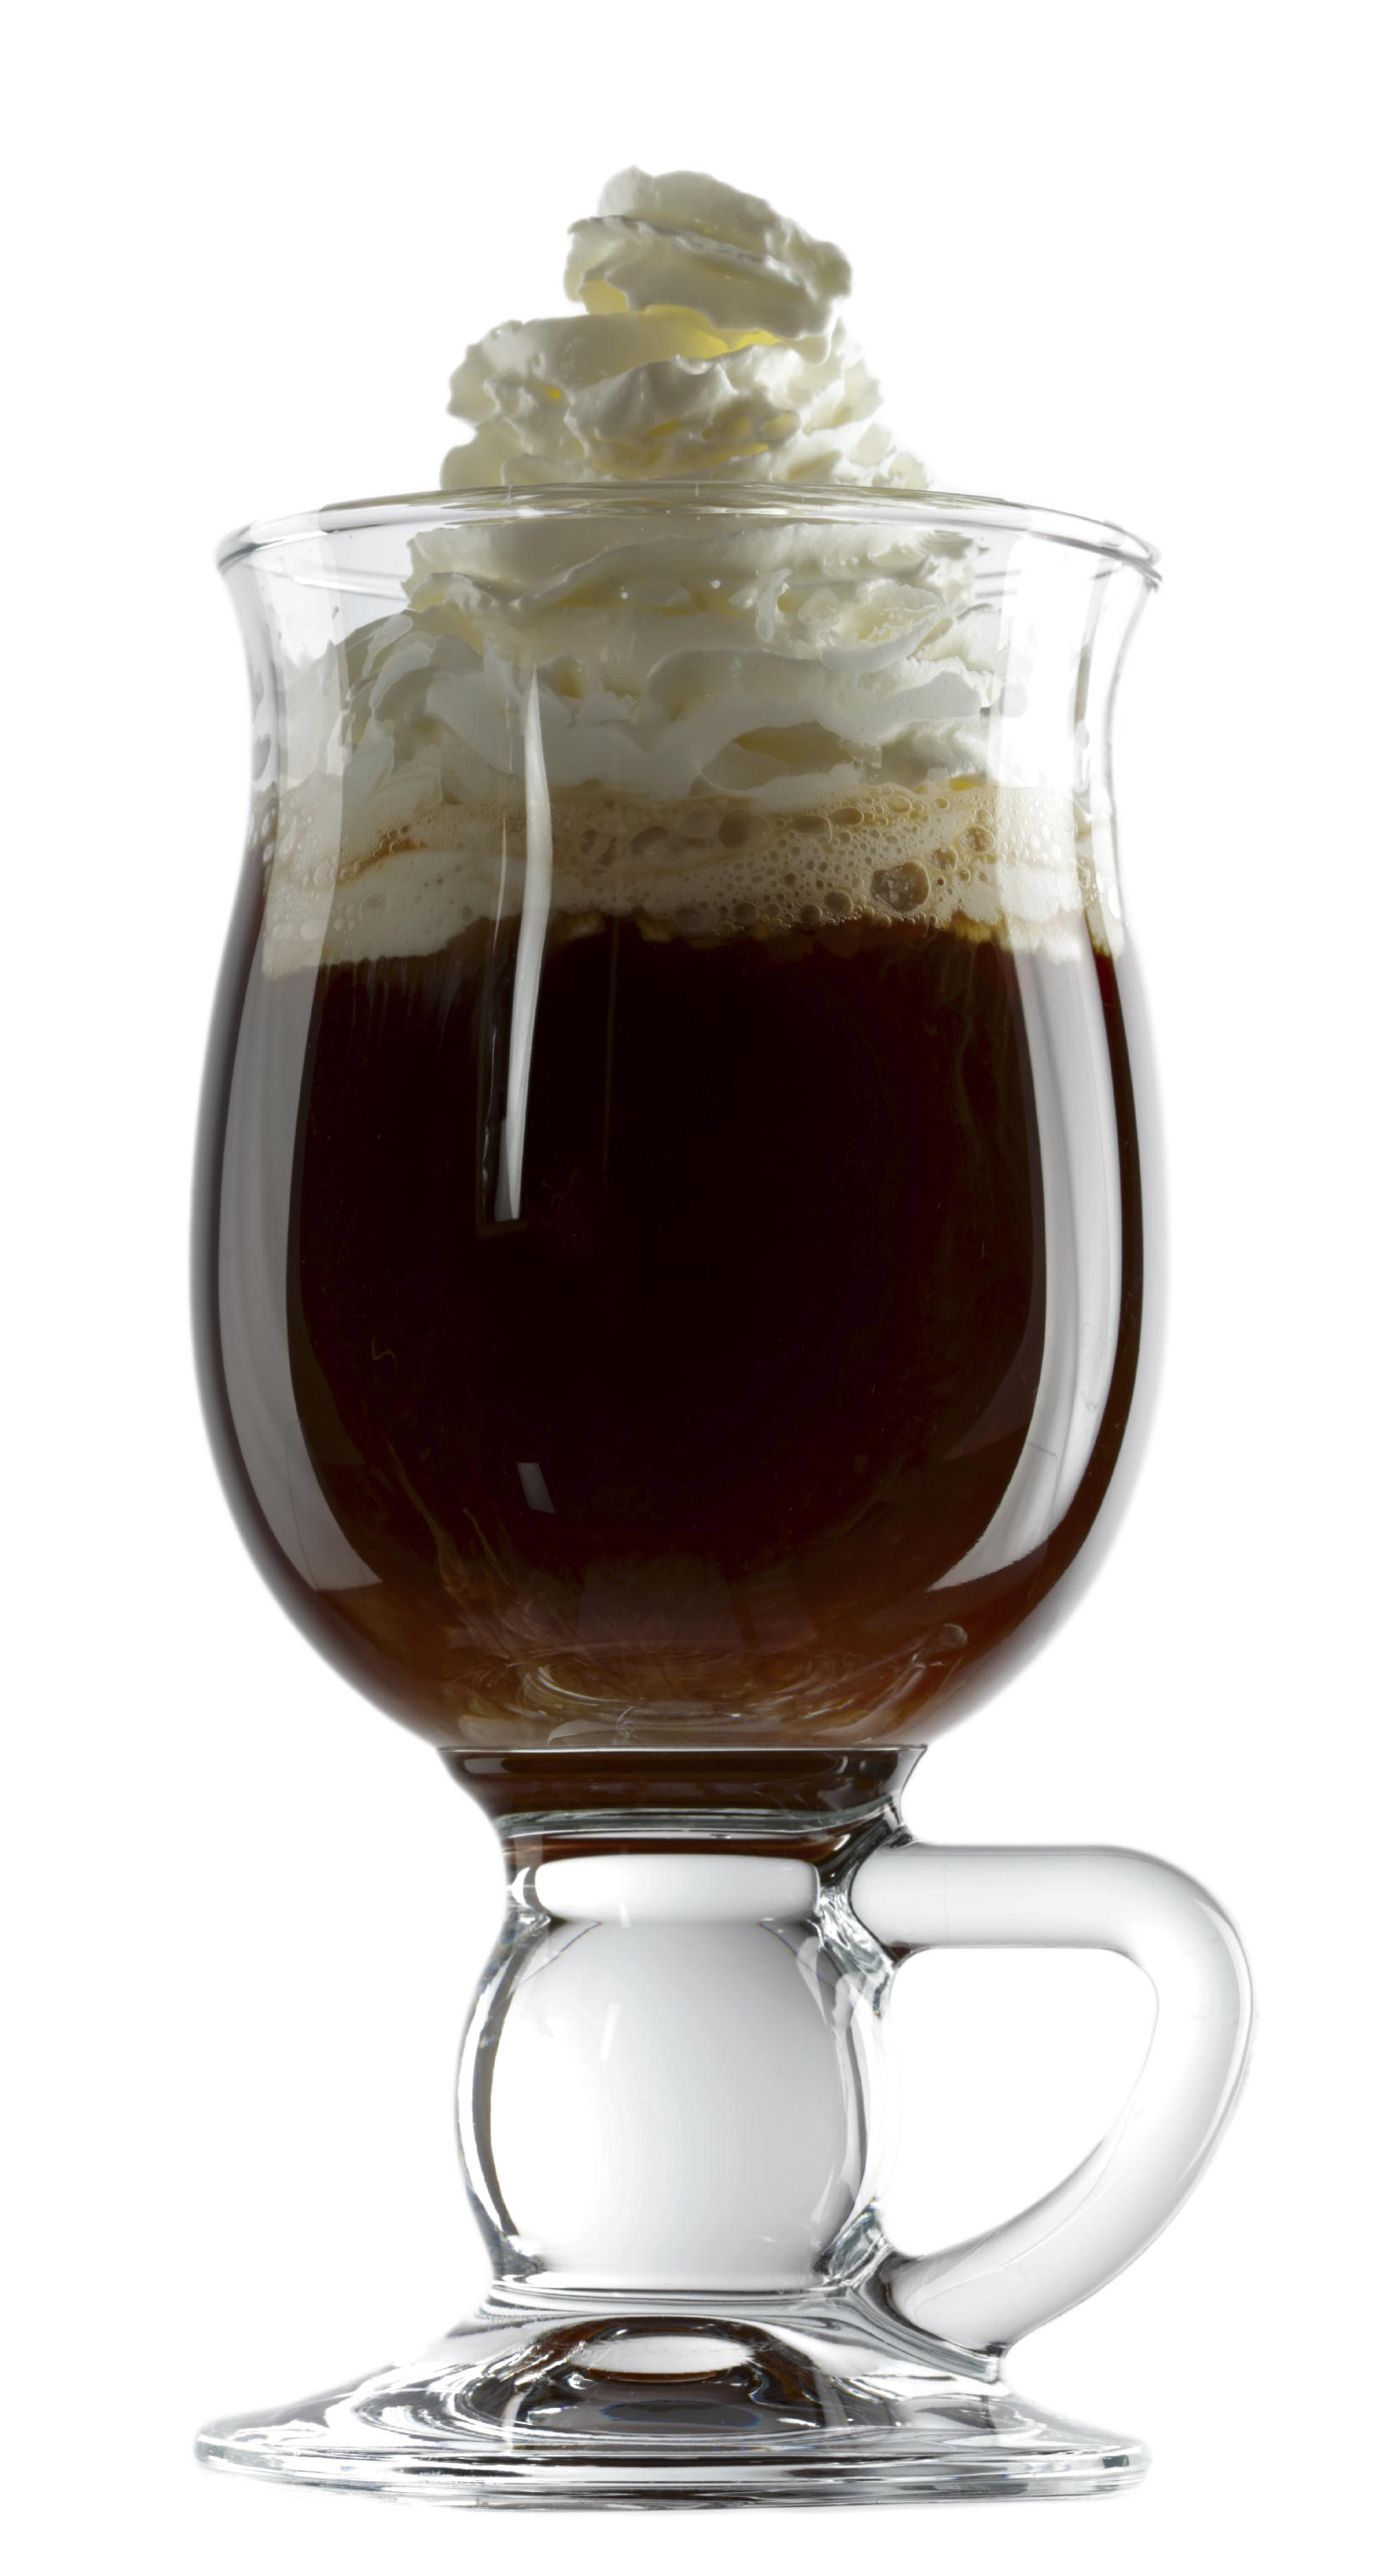 Irish Coffee Pictures to pin on Pinterest